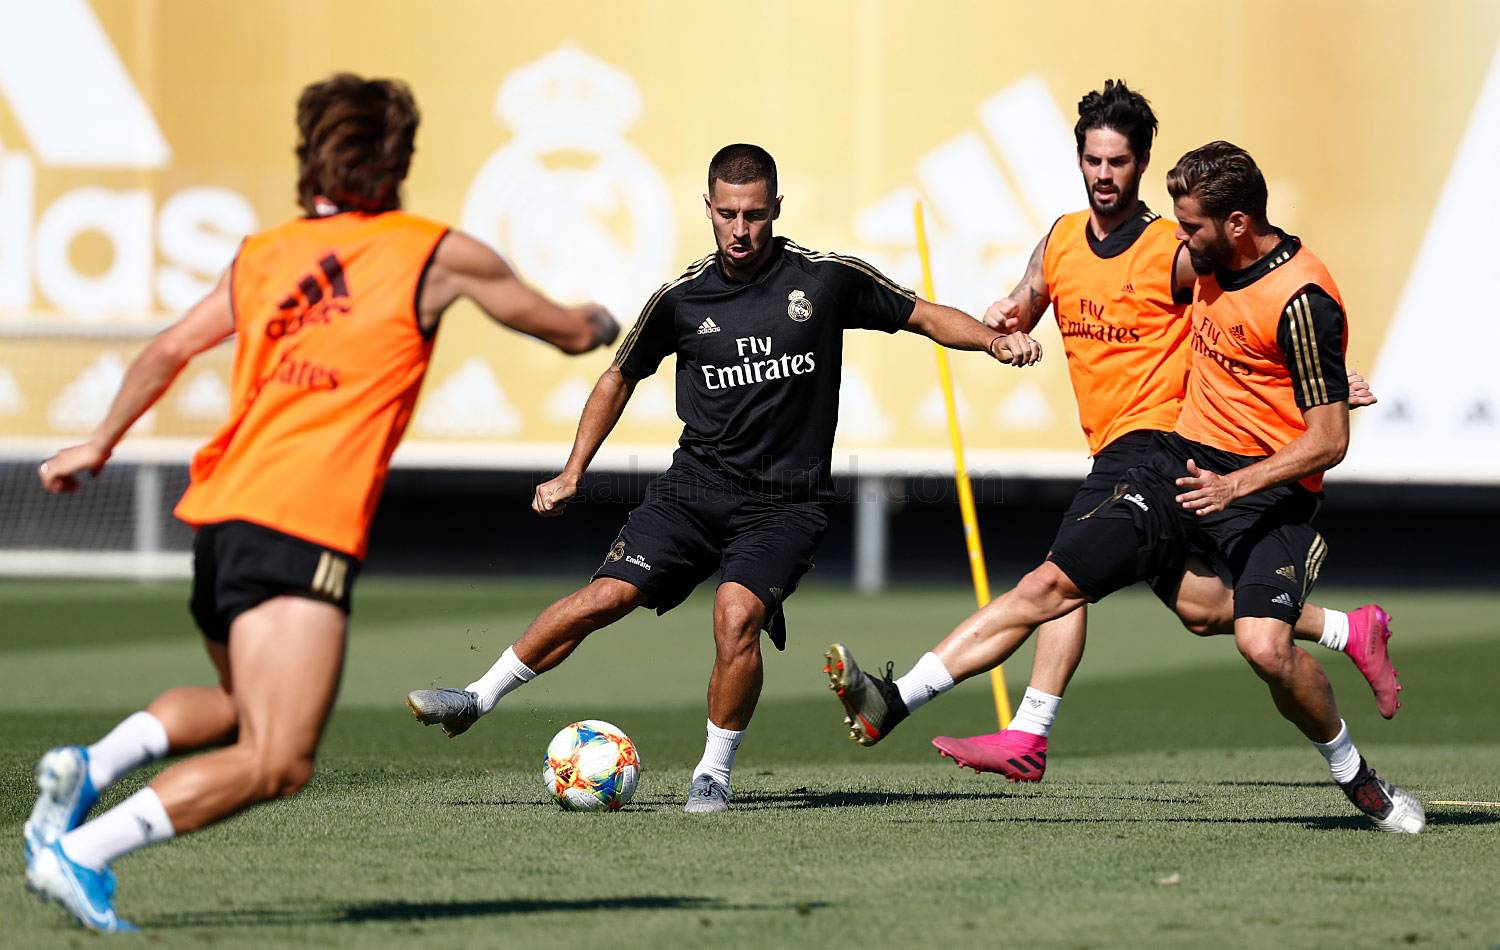 Real Madrid - Entrenamiento del Real Madrid  - 29-07-2019